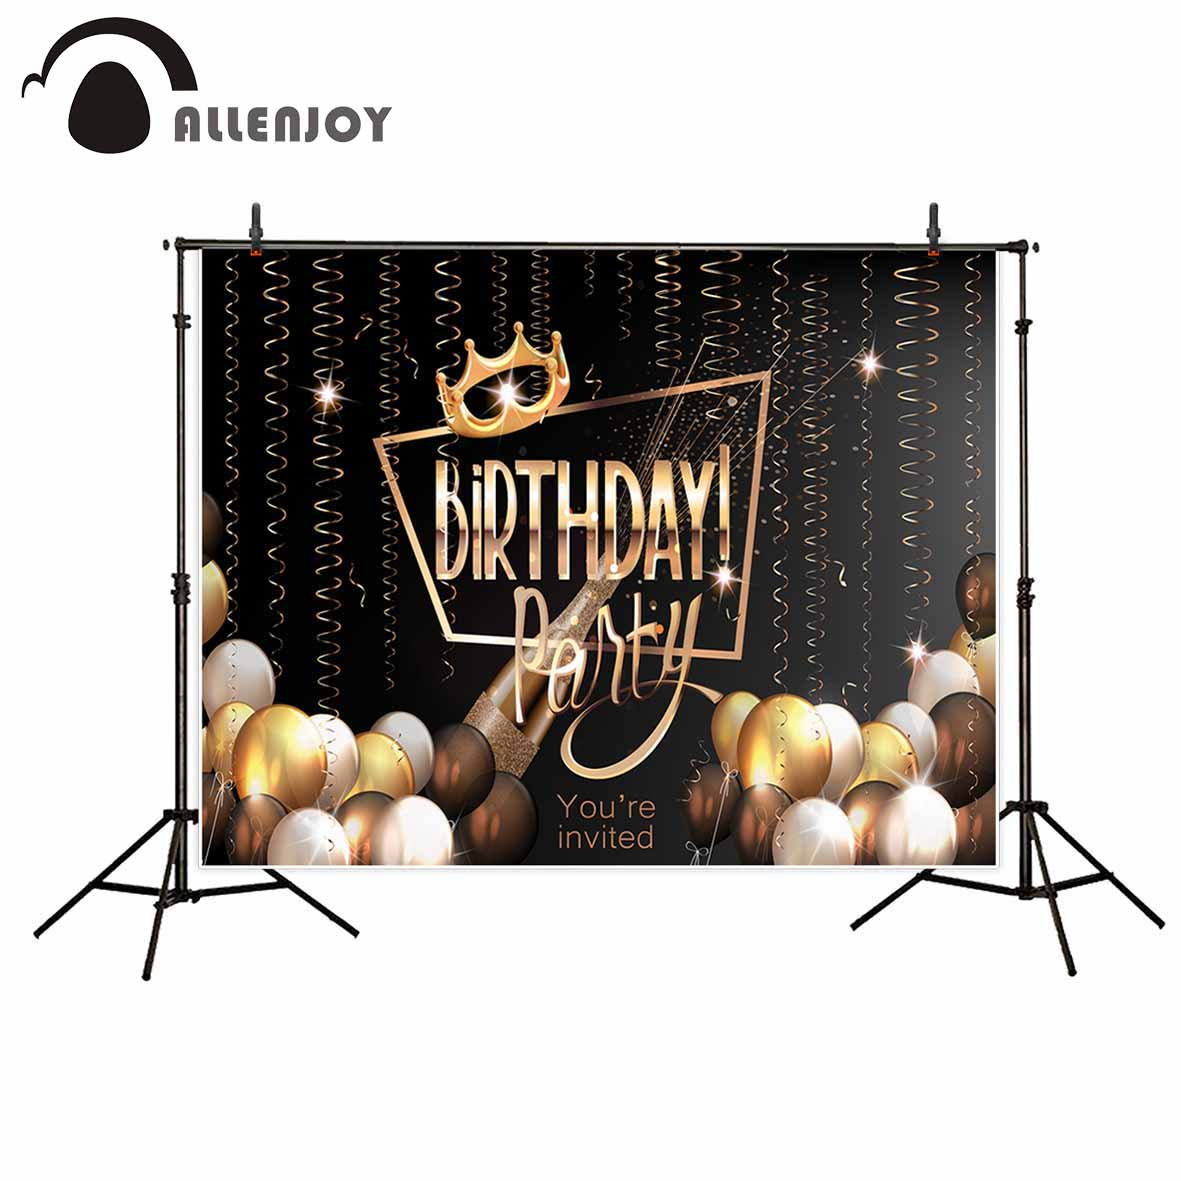 Allenjoy vinyl photographic background Ball Ribbon Birthday Crown Custom Party new backdrop photocall photo printed customize allenjoy diy wedding background idea chalk archway backdrop amazing chalkboard custom name date photocall excluding bracket